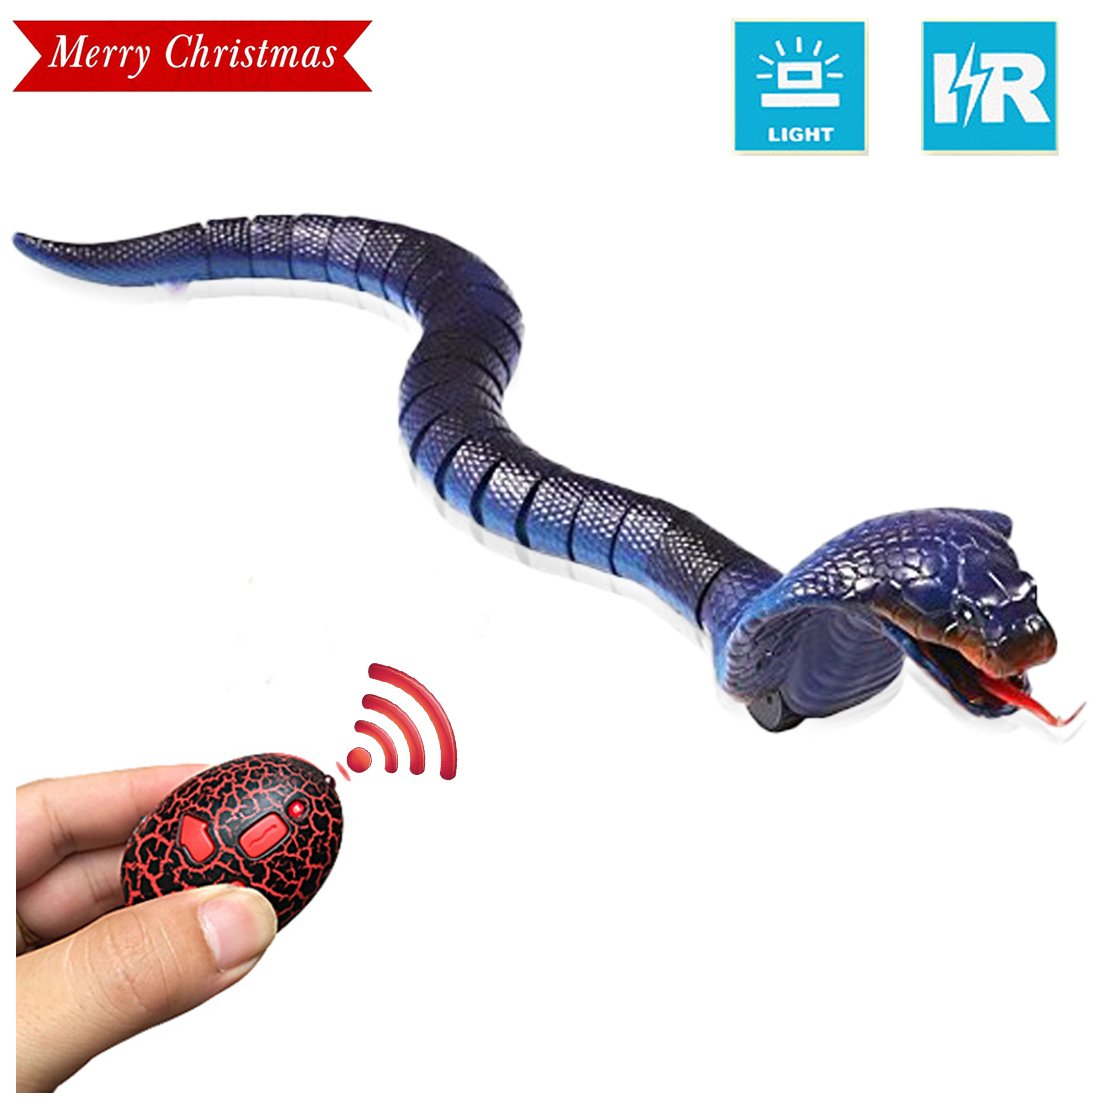 [2018 NEWEST]17'' Remote Control Snake Toy,Unee1 Infrared RC Remote Control Chargeable Lifelike Realistic Naja Cobra Toy with Retractable Tongue and Swinging Tail for Kids Fun Entertainment Gifts-Blue by Unee1